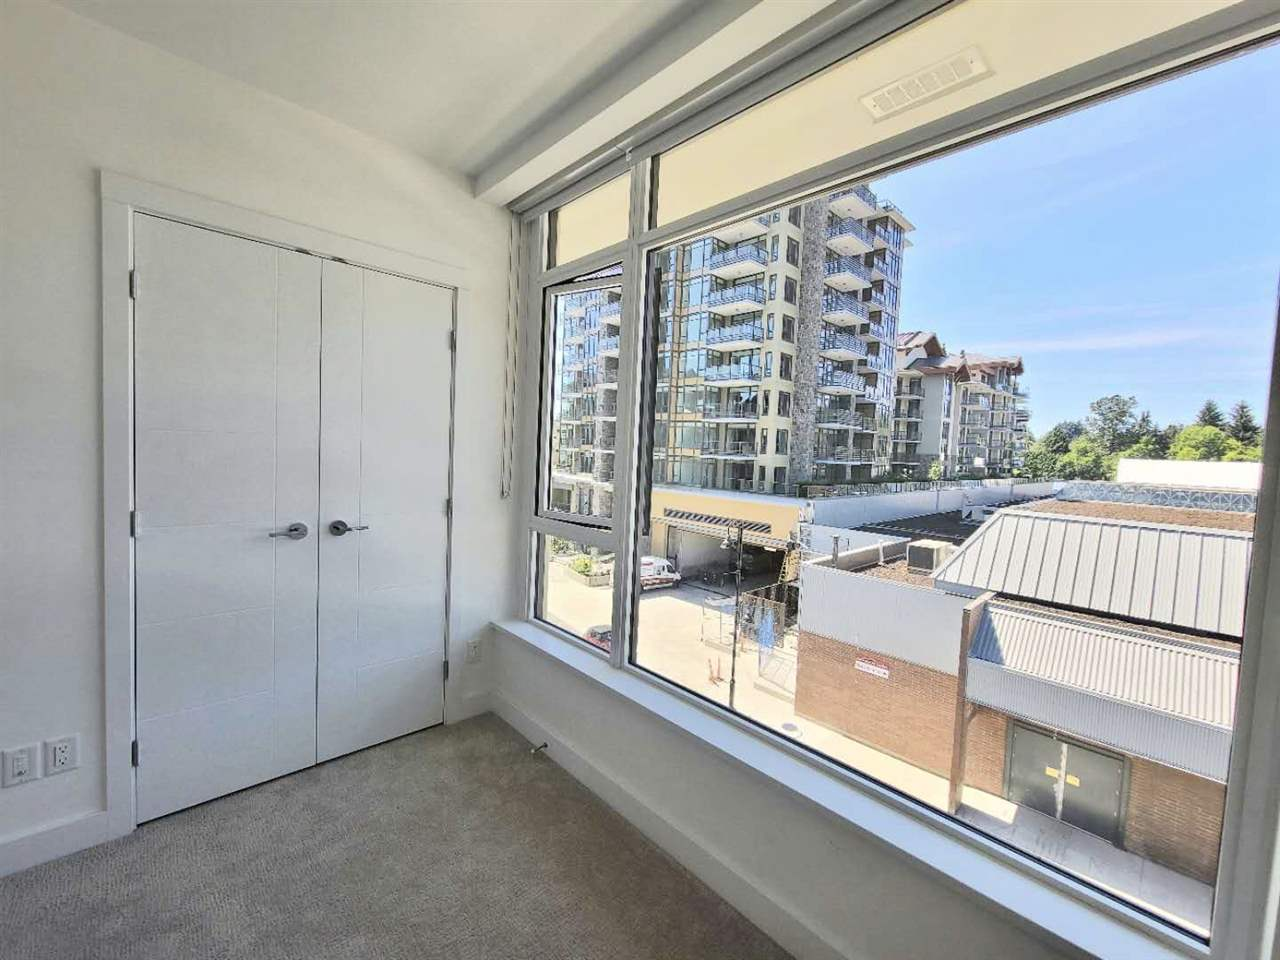 402 1295 CONIFER STREET - Lynn Valley Apartment/Condo for sale, 2 Bedrooms (R2464712) - #10